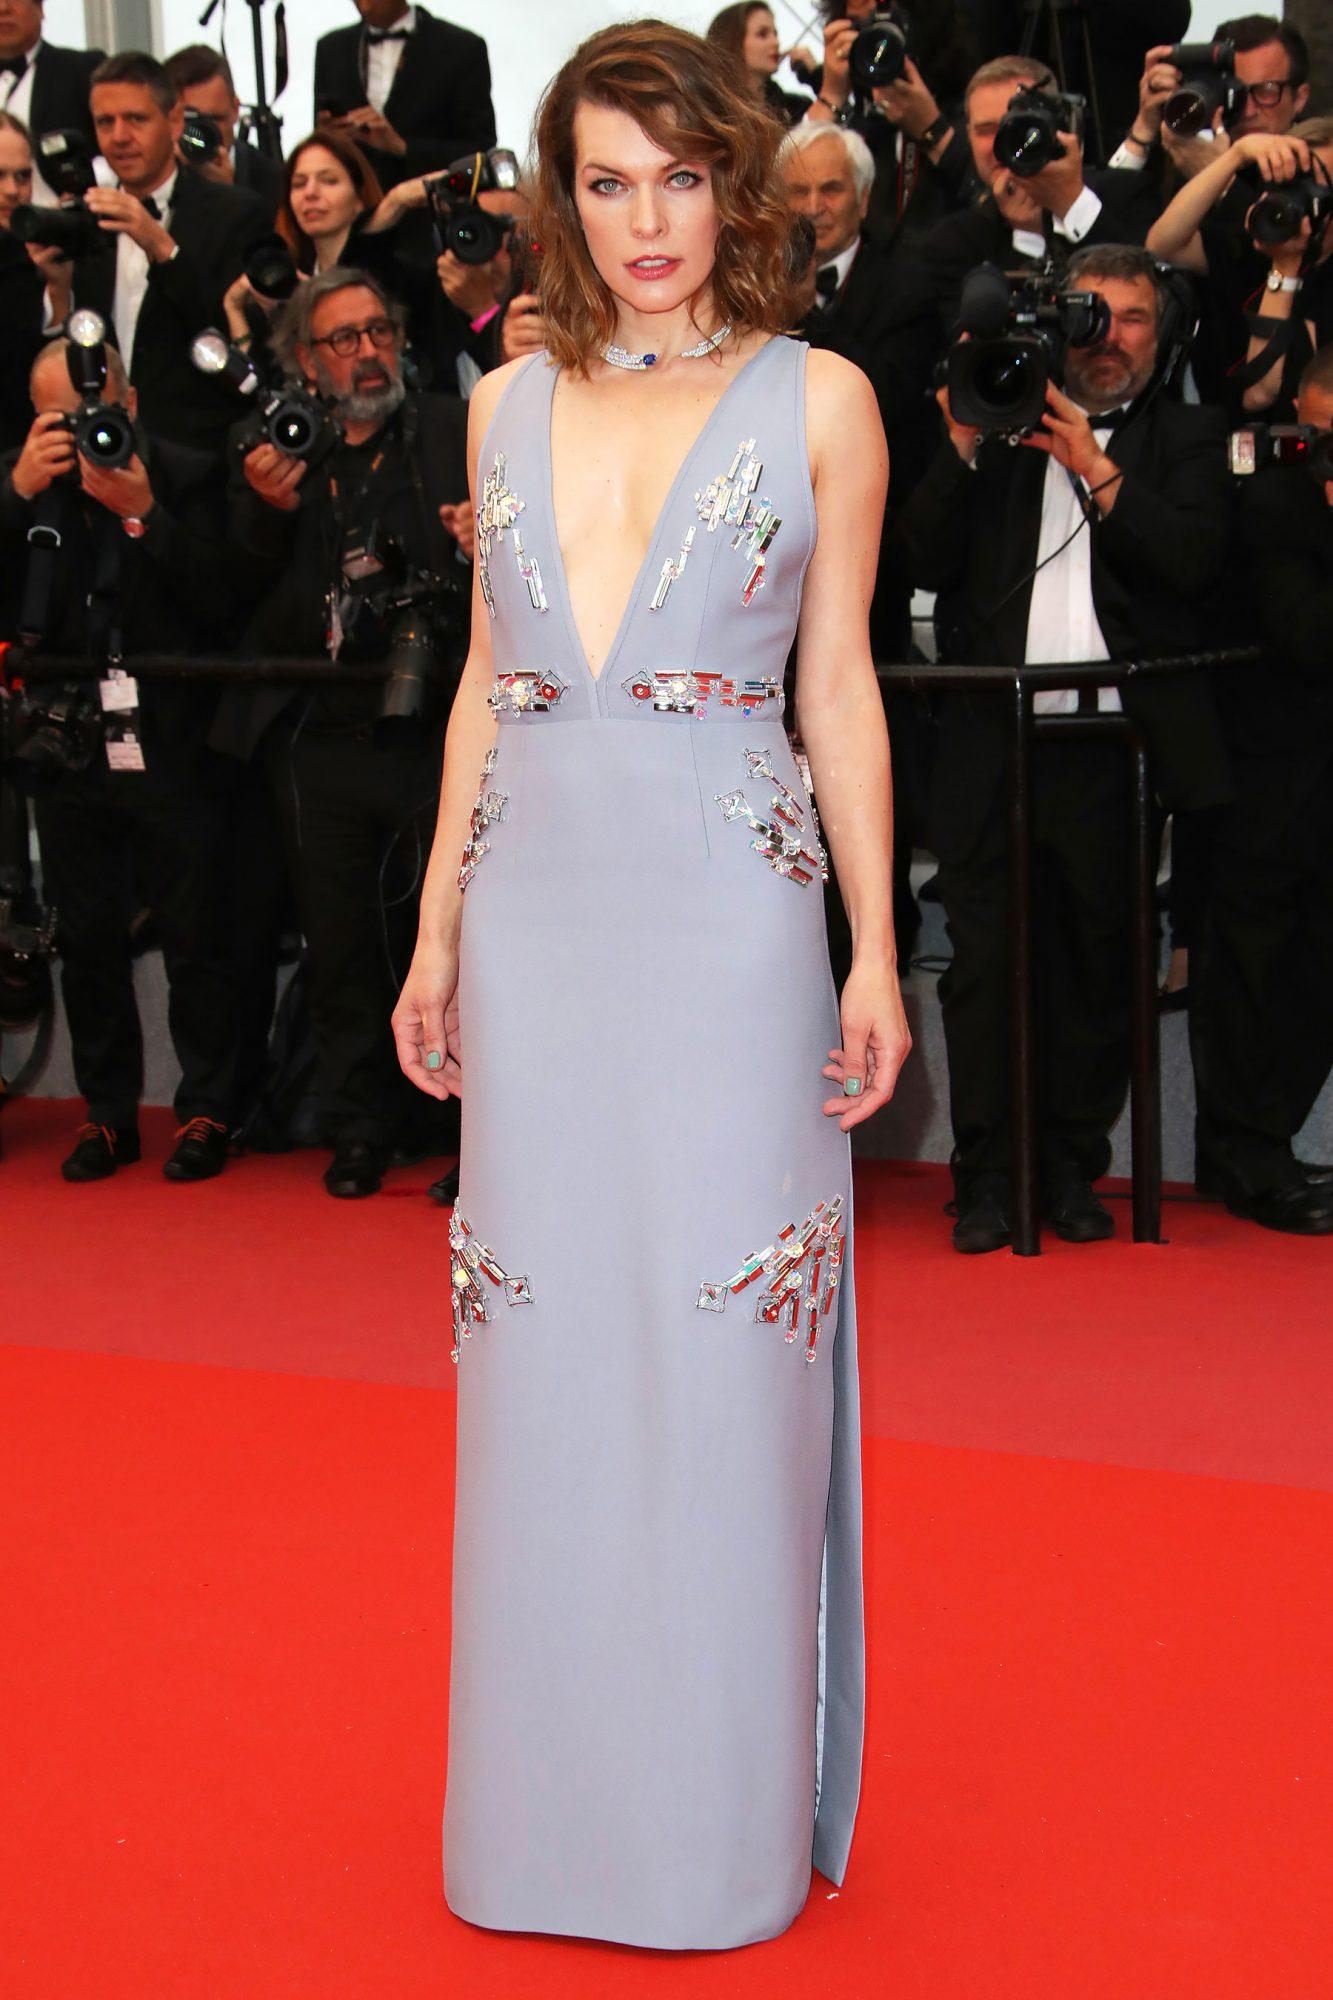 'Burning' premiere, 71st Cannes Film Festival, France - 16 May 2018